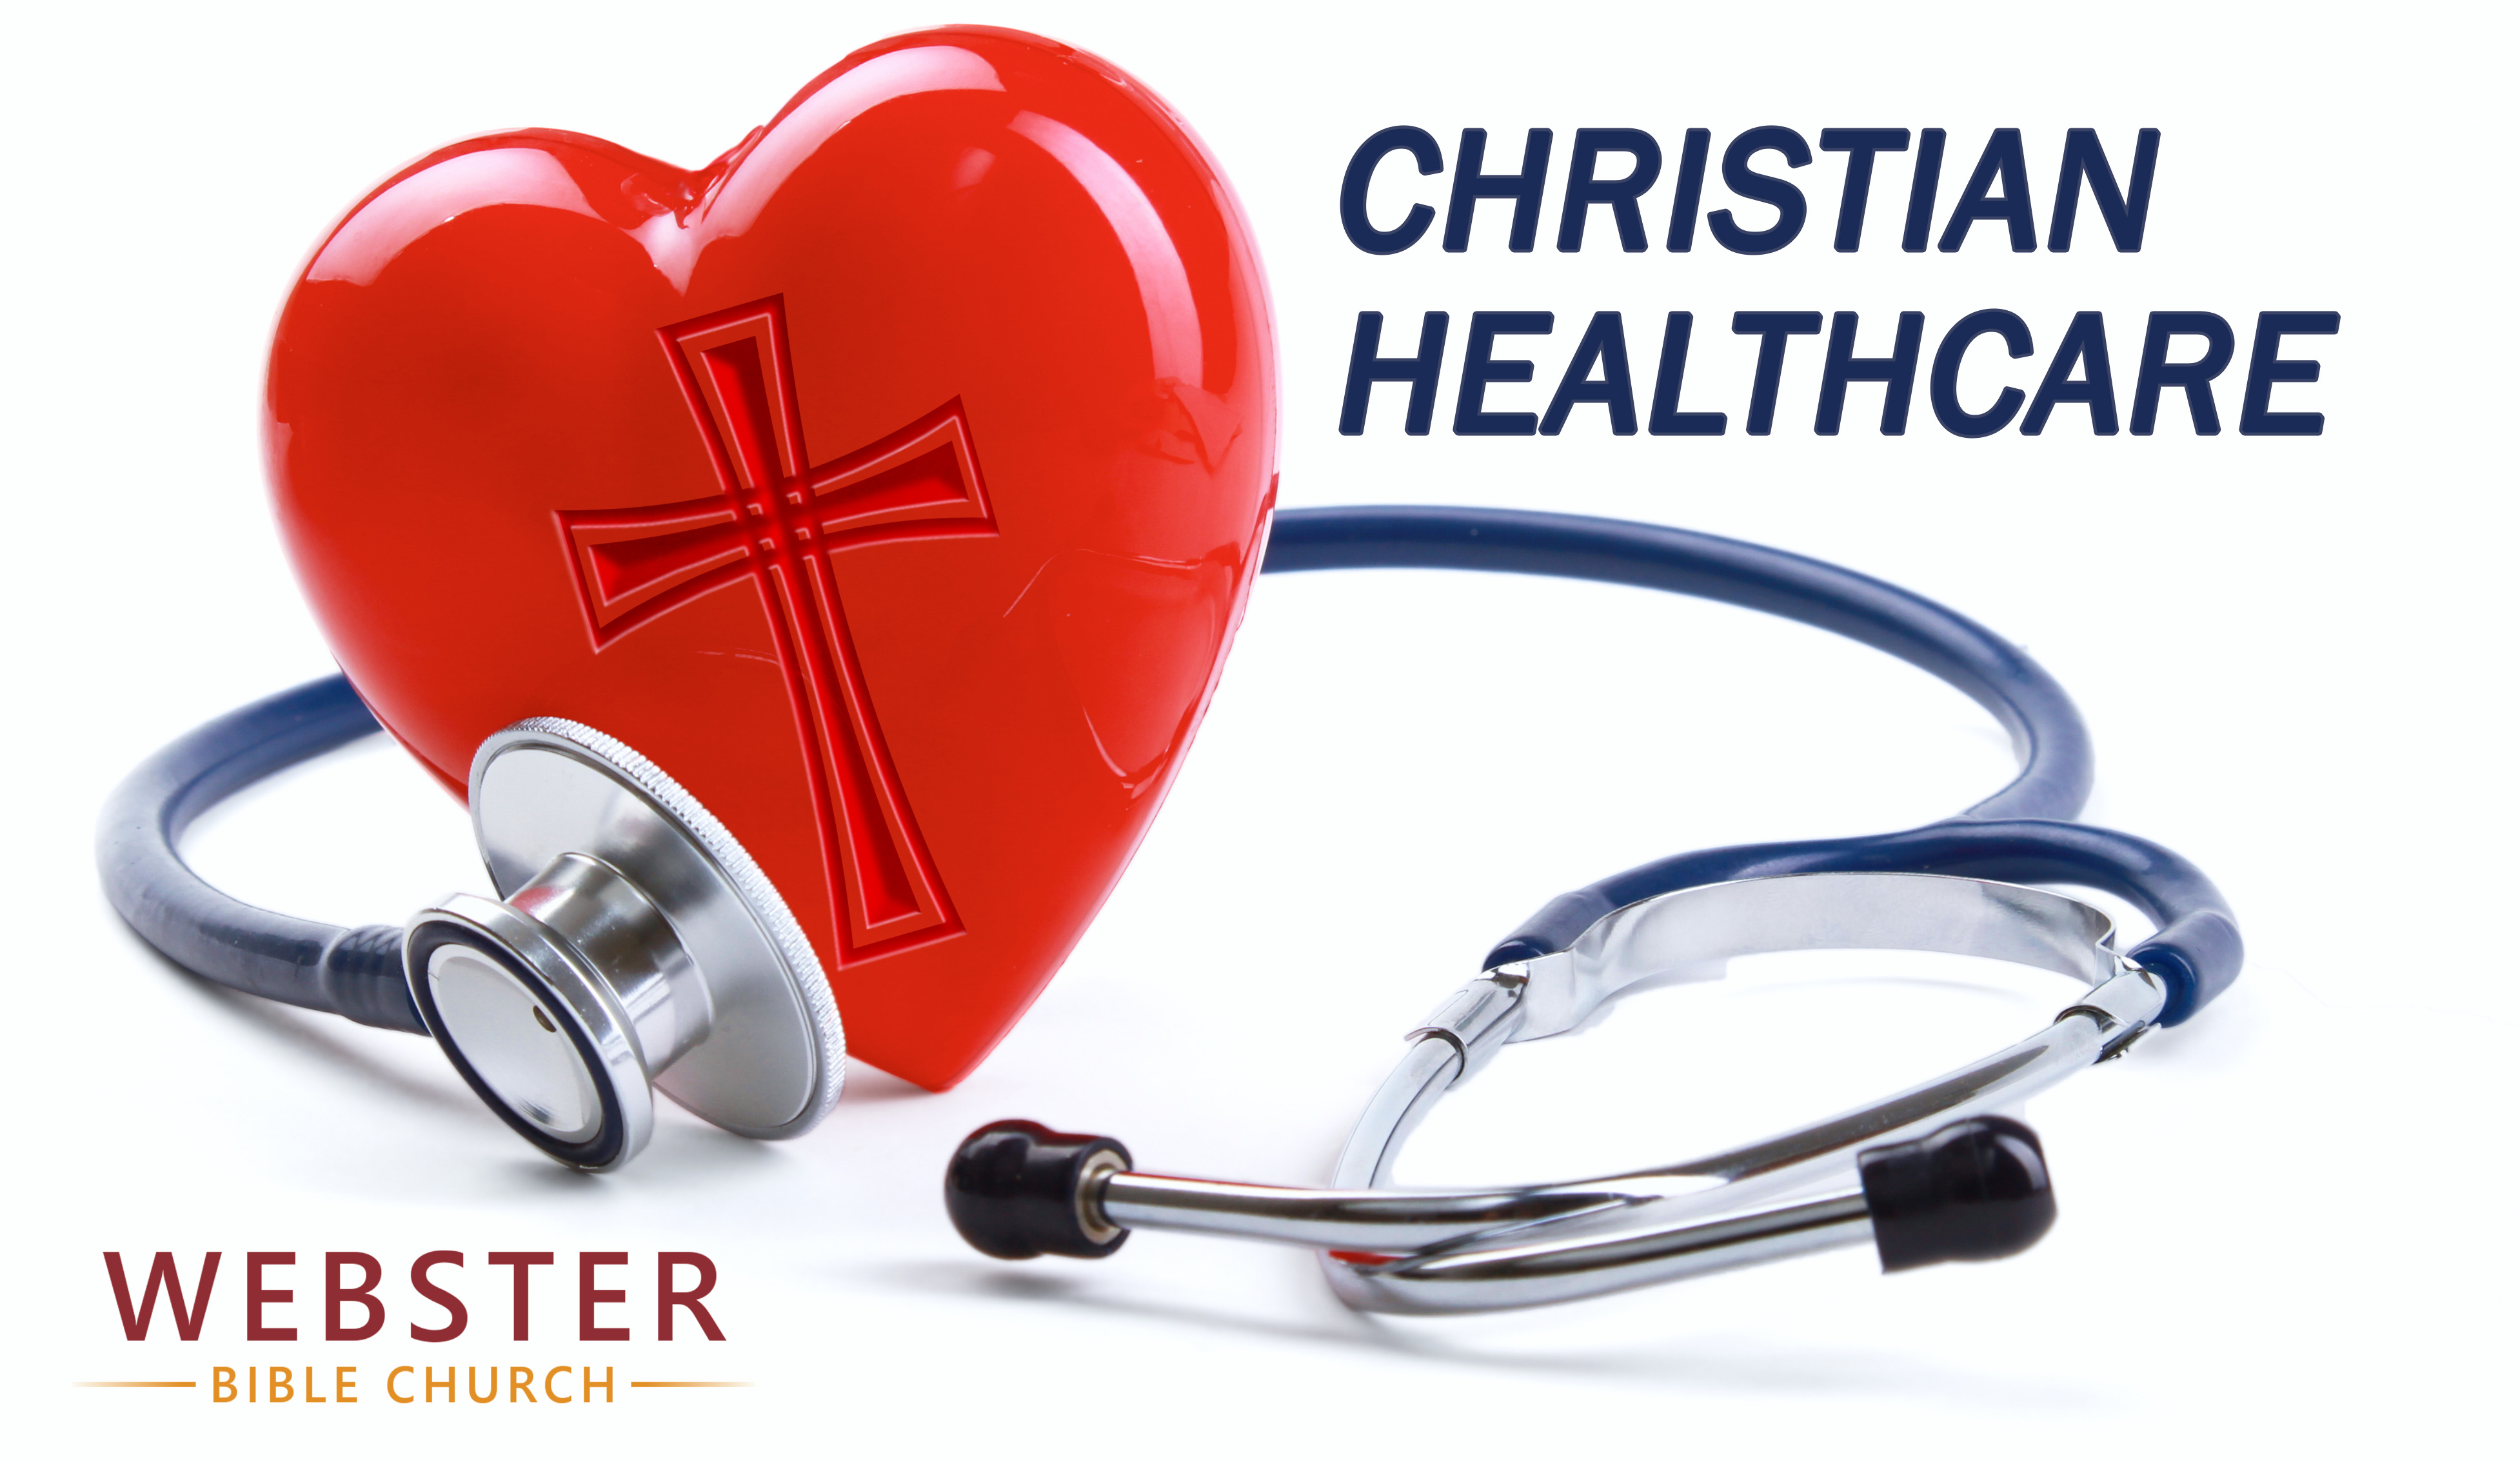 christian singles in webster Enter the dating scene again by visiting our amazing dating service join separated but dating website and bring more love and happiness into your life, separated but dating.